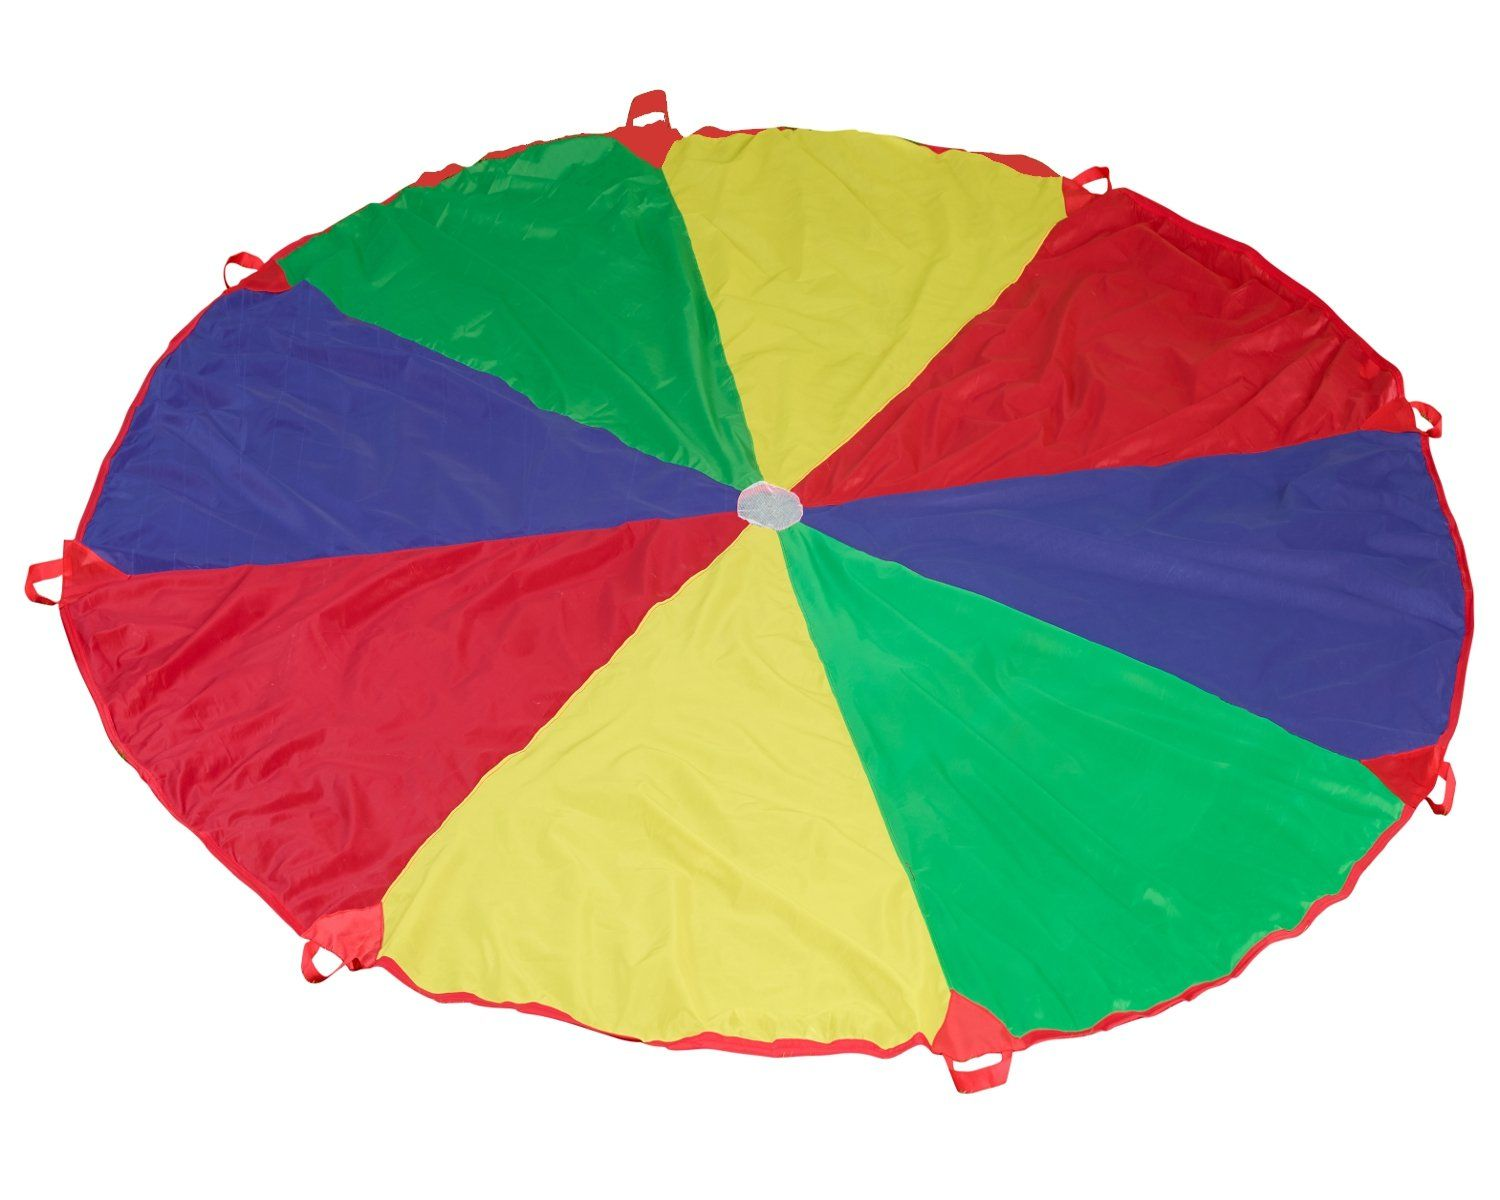 12 feet parachute with 8 handles